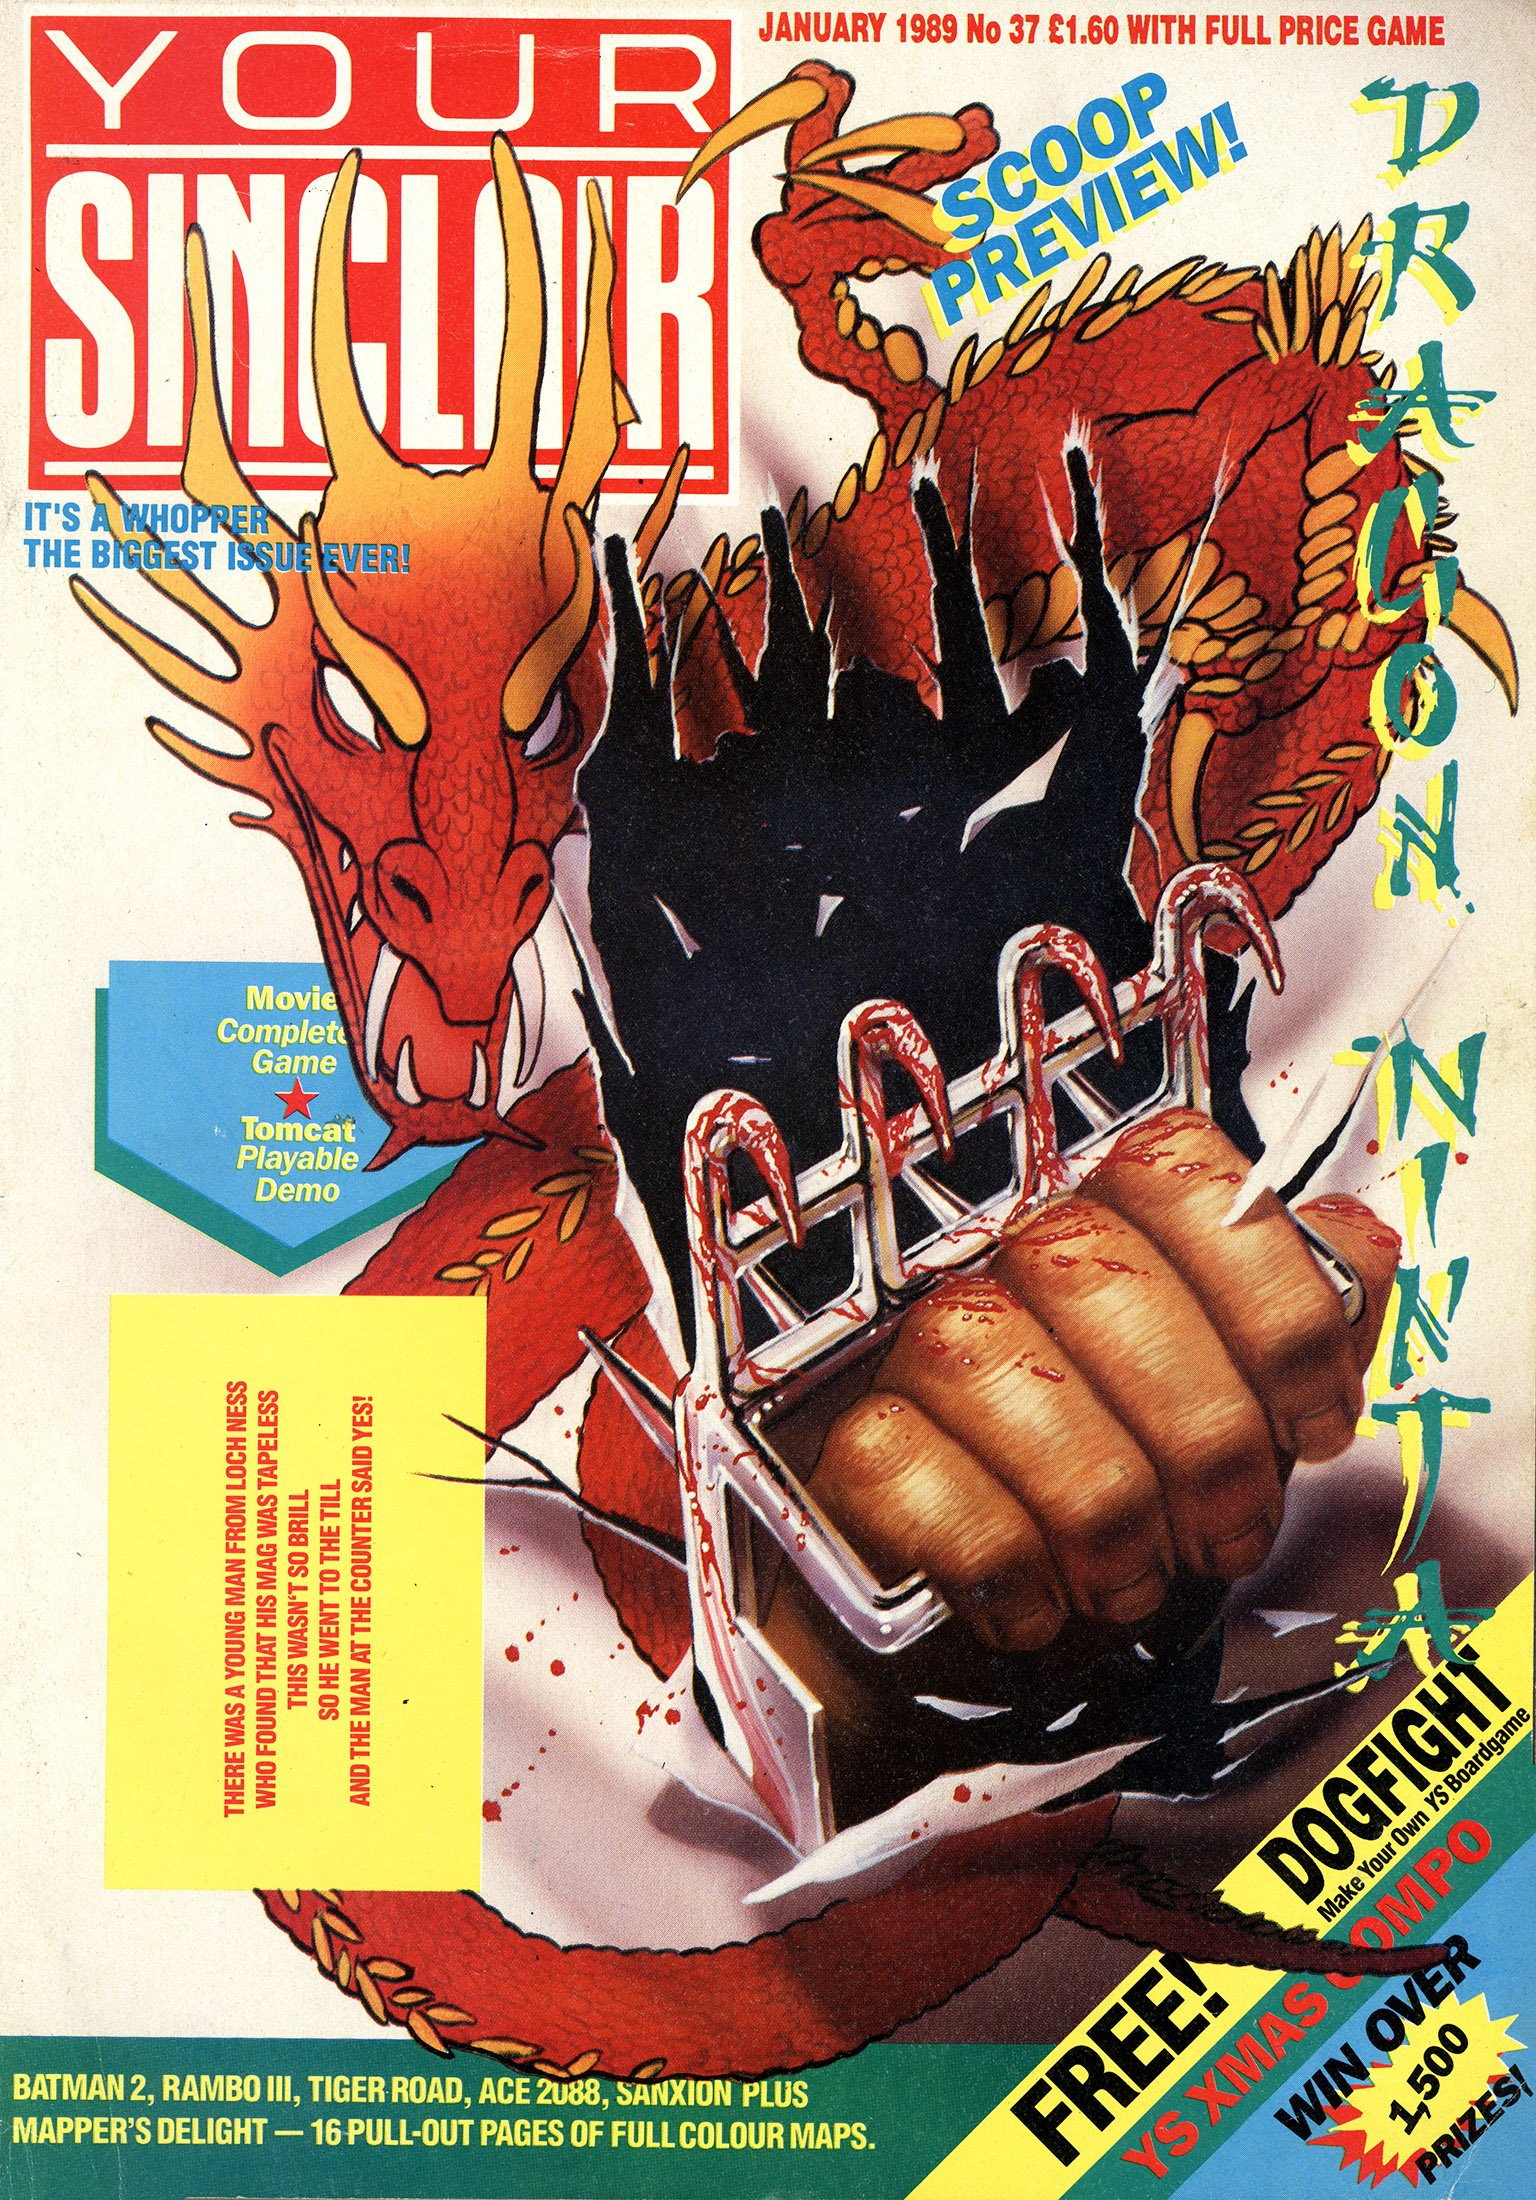 Your Sinclair Issue 37 (January 1989)